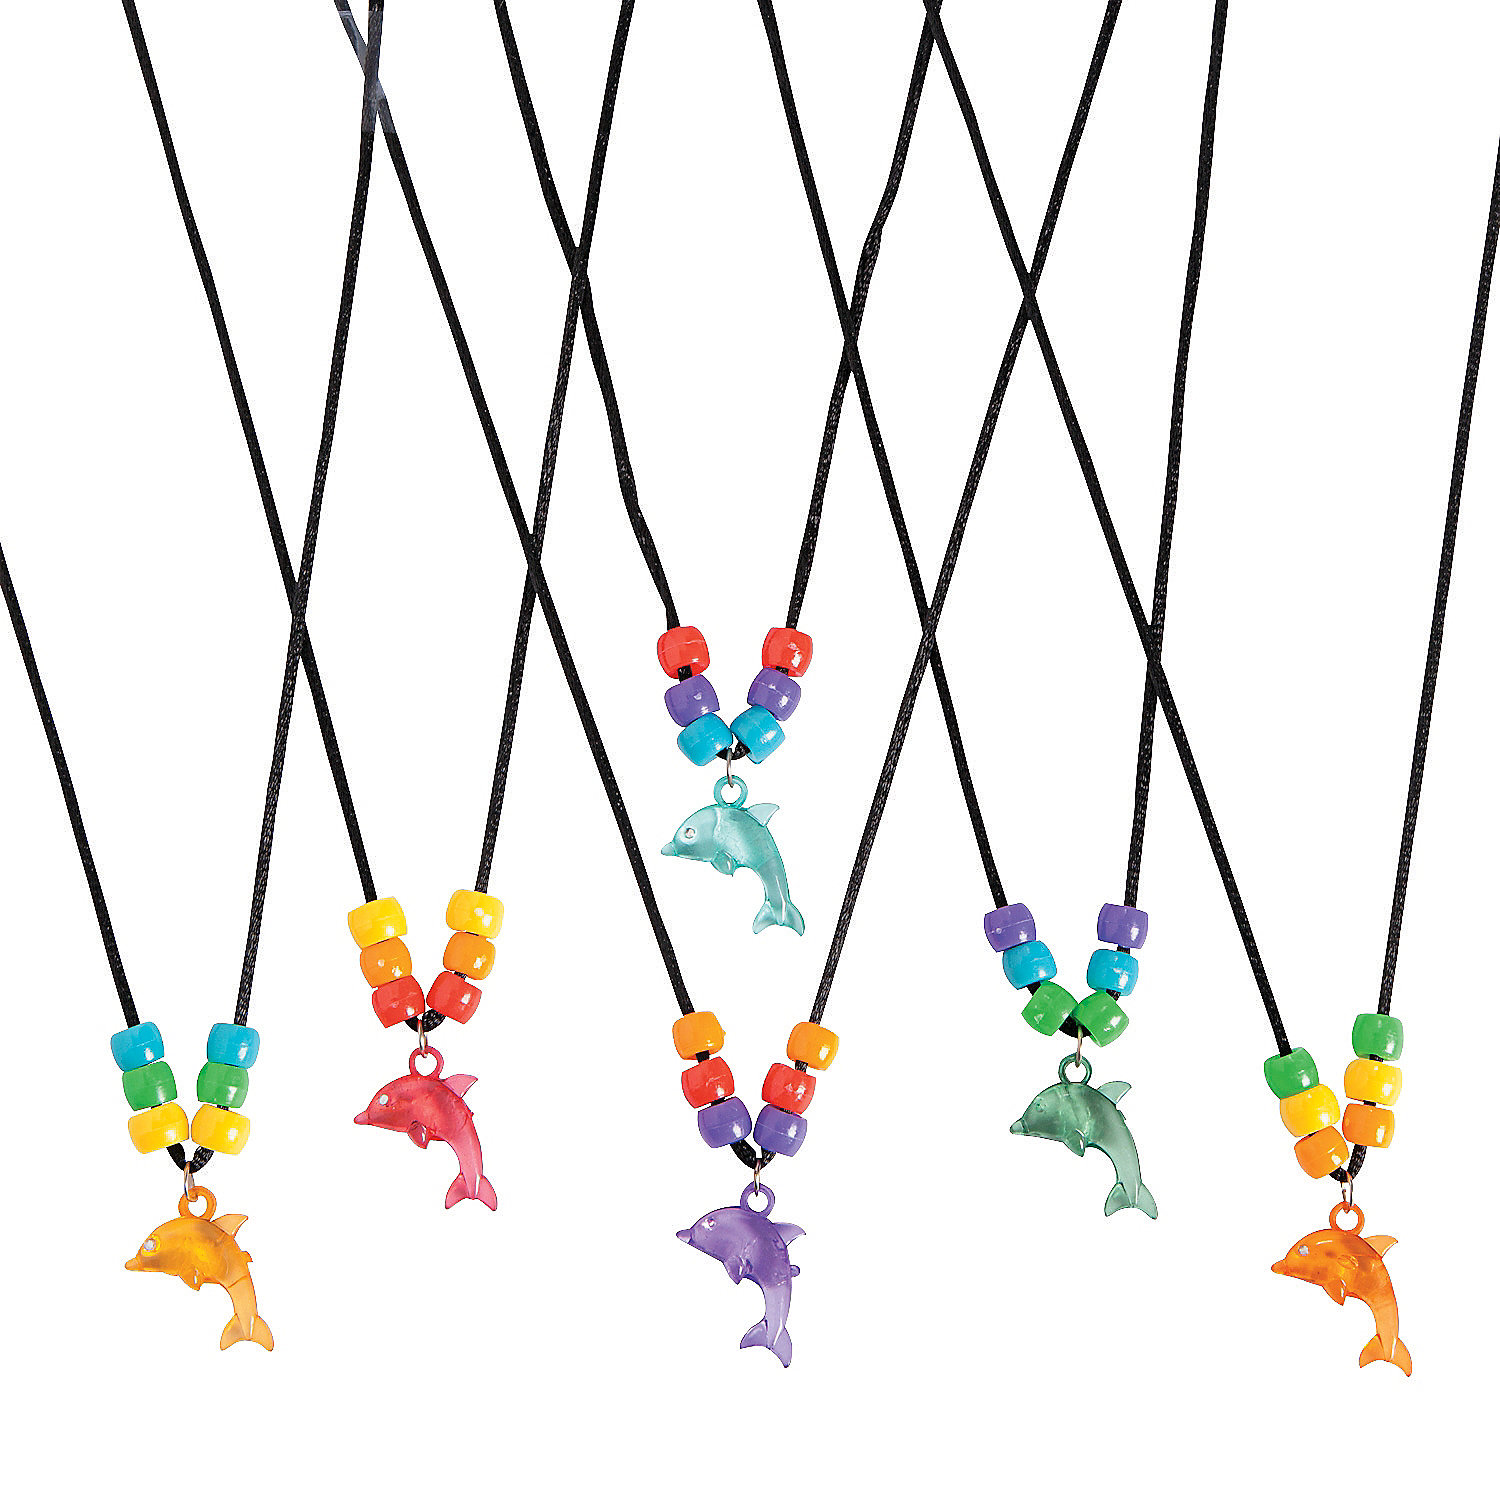 Beaded dolphin necklace craft kit jewelry crafts crafts for Necklace crafts for kids